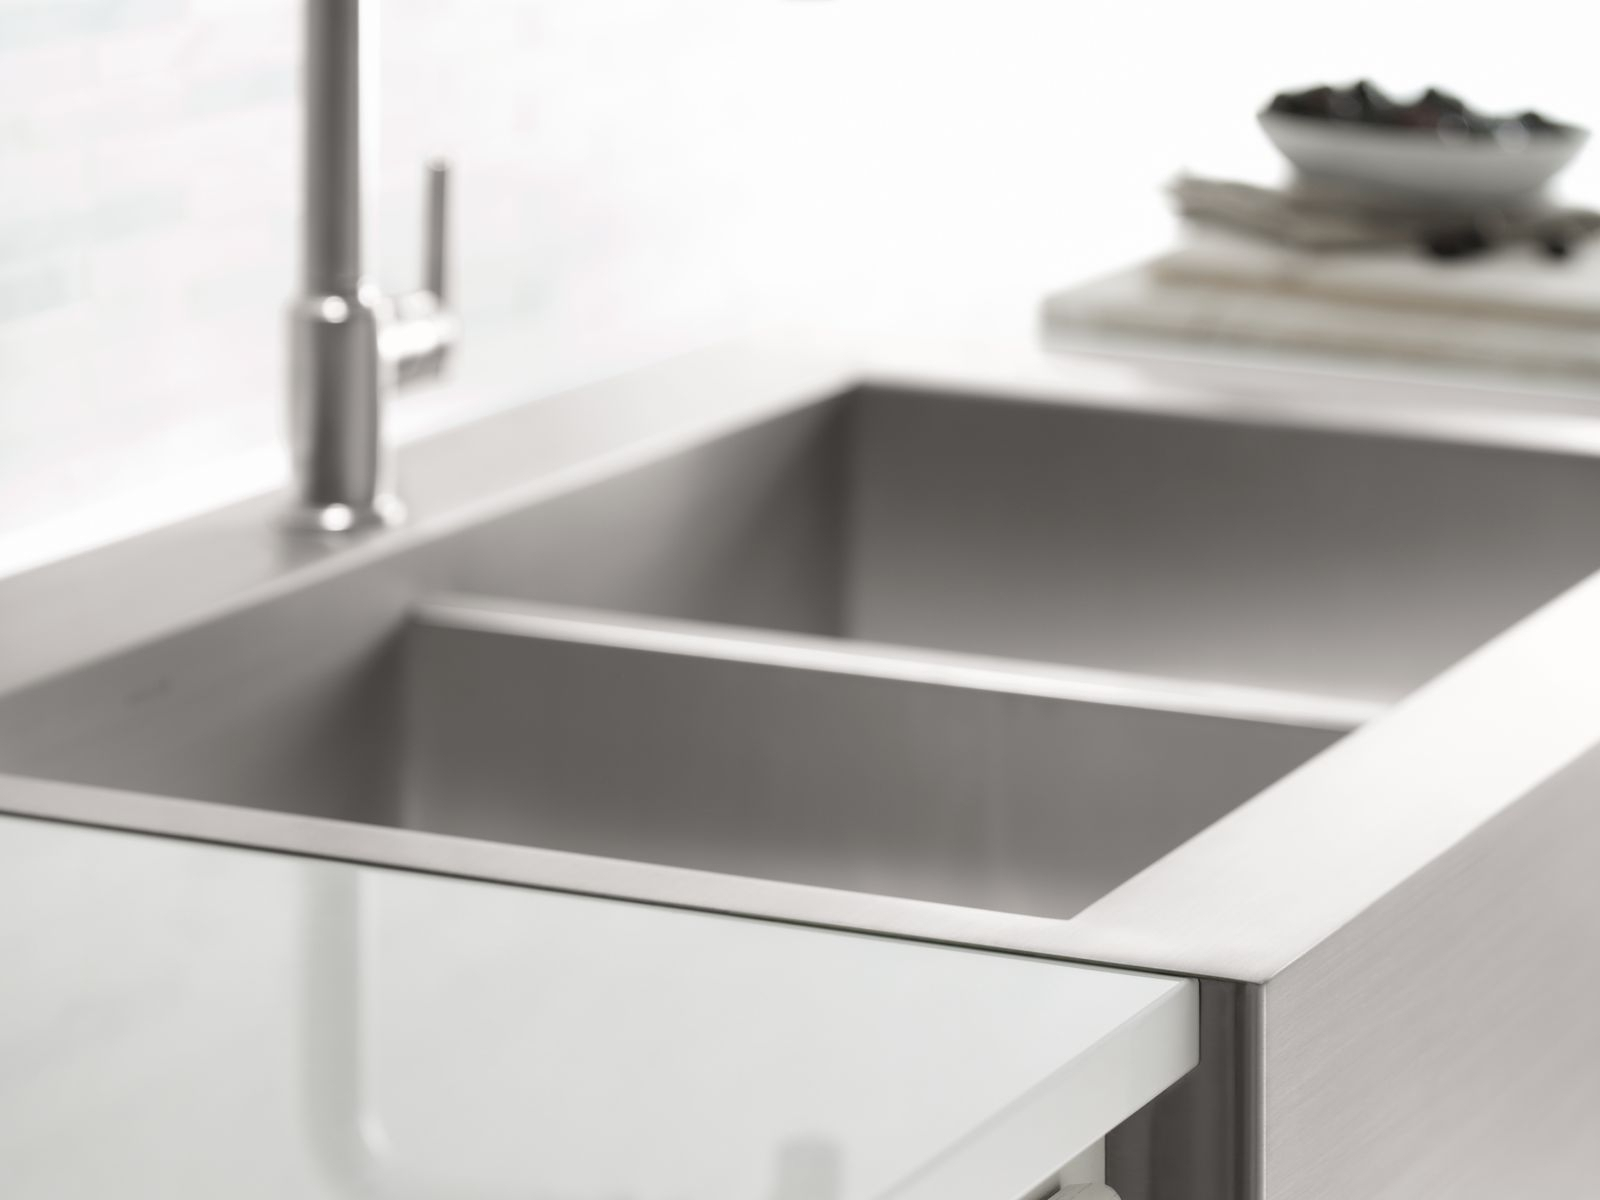 Stainless Steel Farmhouse Sink With Faucet Holes